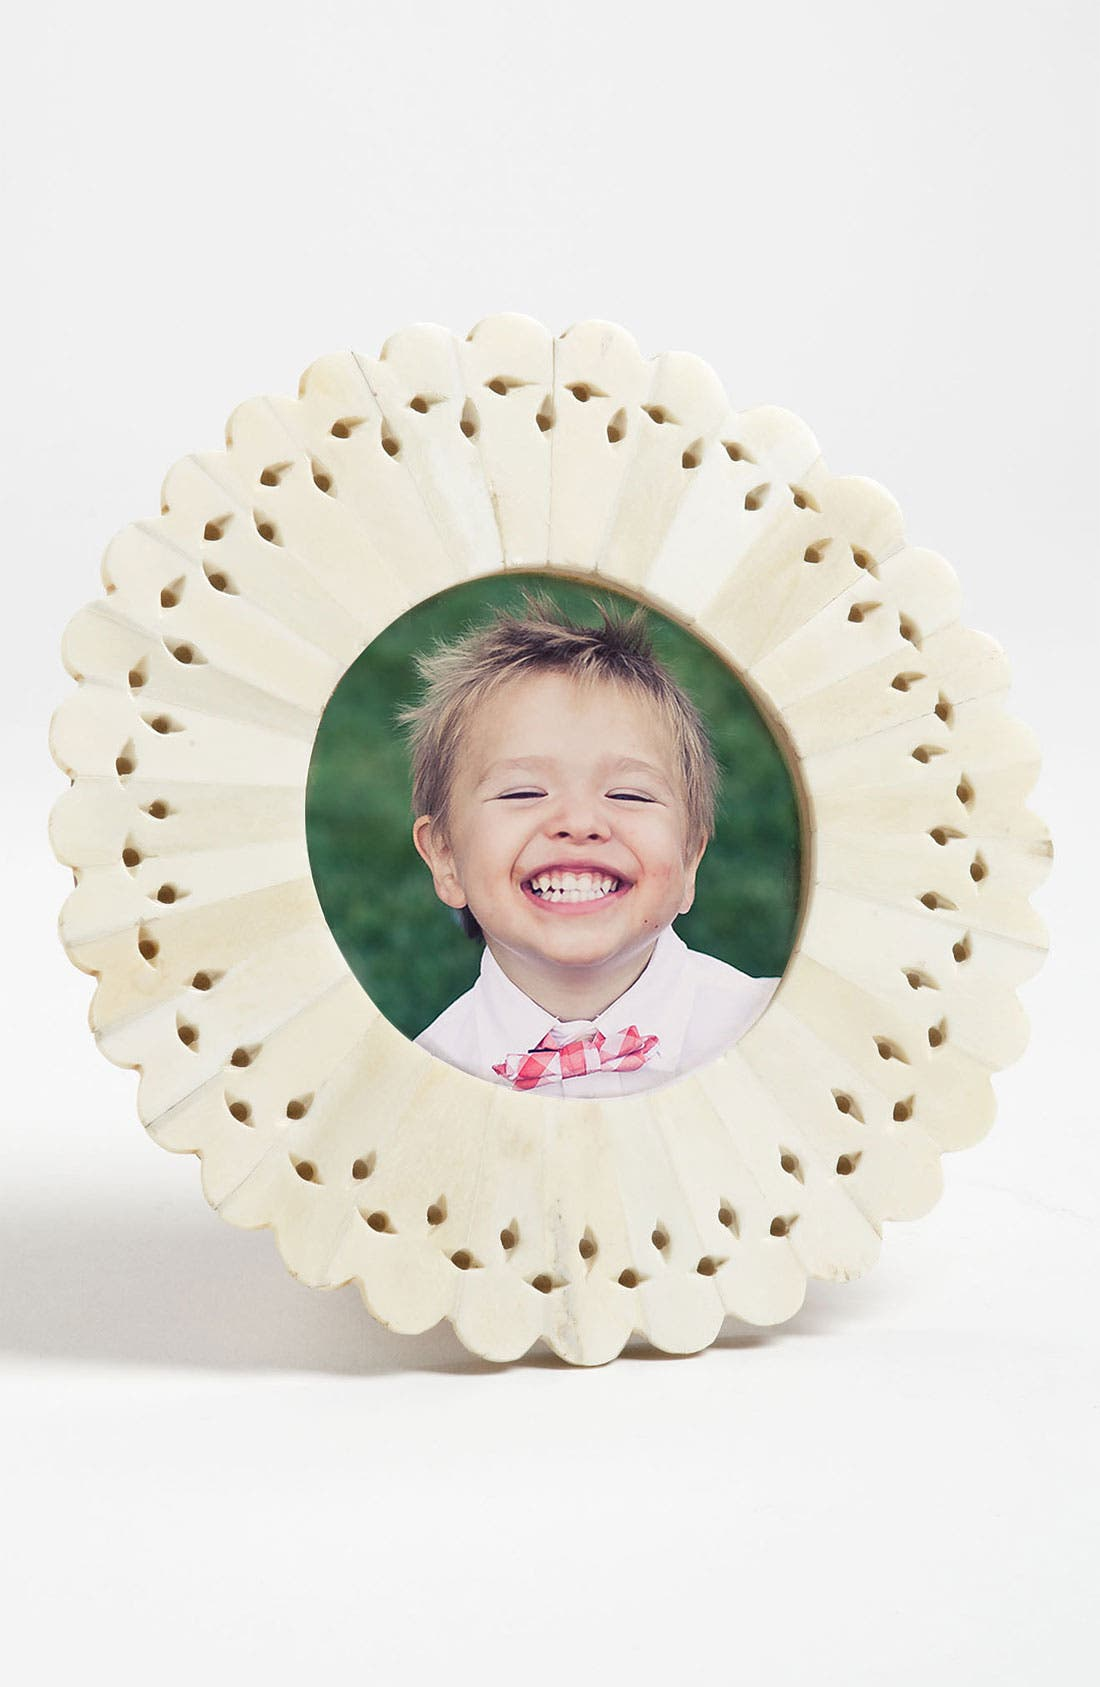 Alternate Image 1 Selected - Circular Photo Frame (4x4)